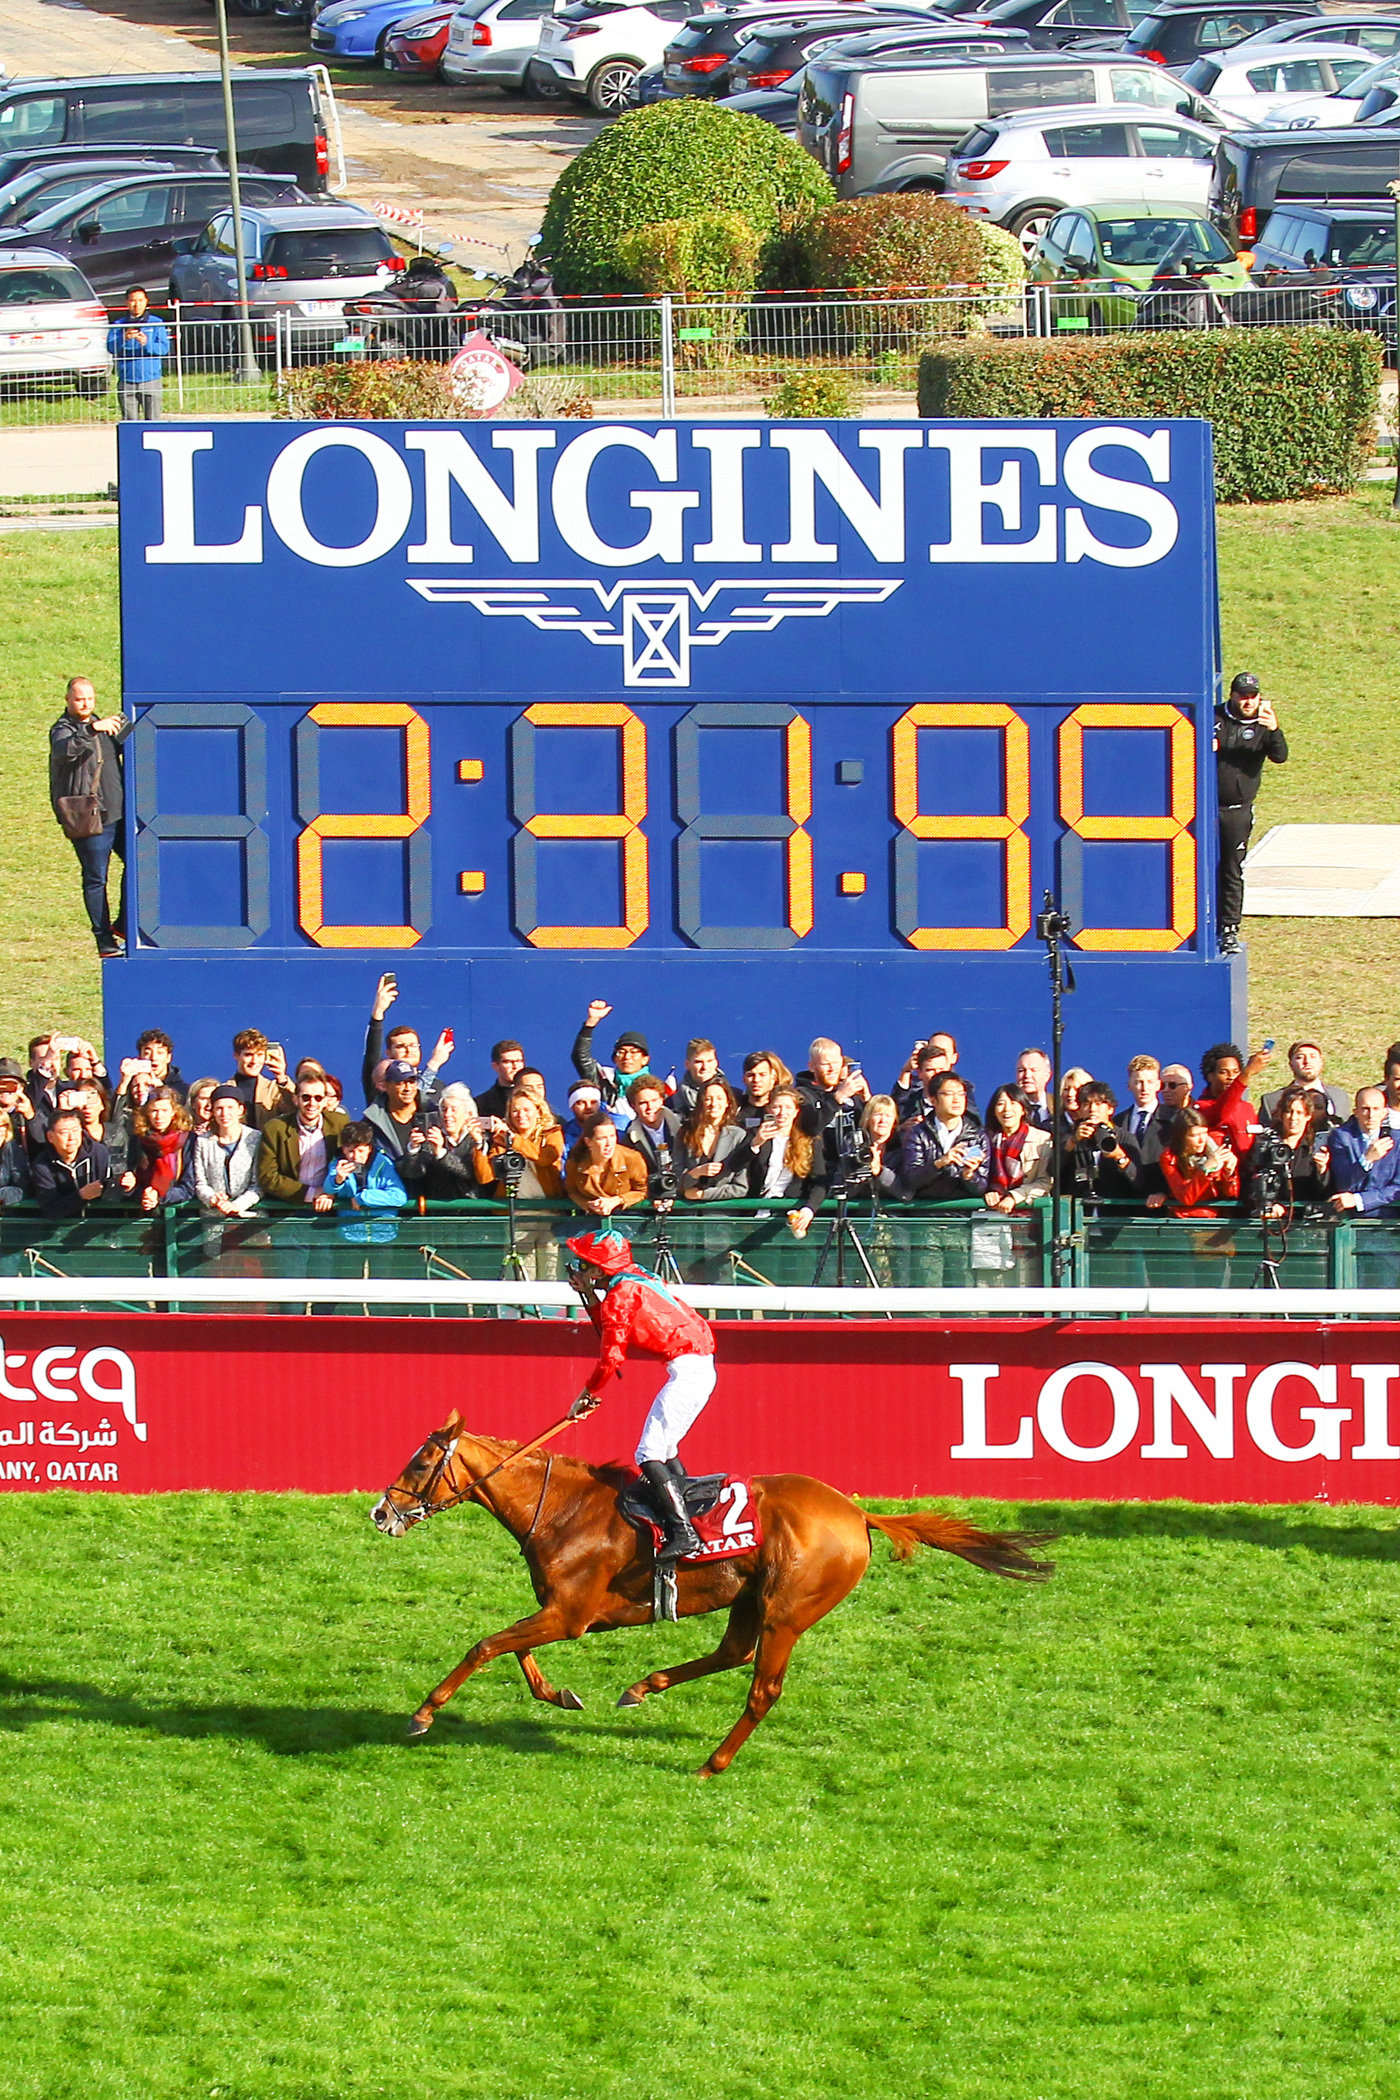 Longines Flat Racing Event: Waldgeist wins the 98th edition of the Qatar Prix de l'Arc de Triomphe 5